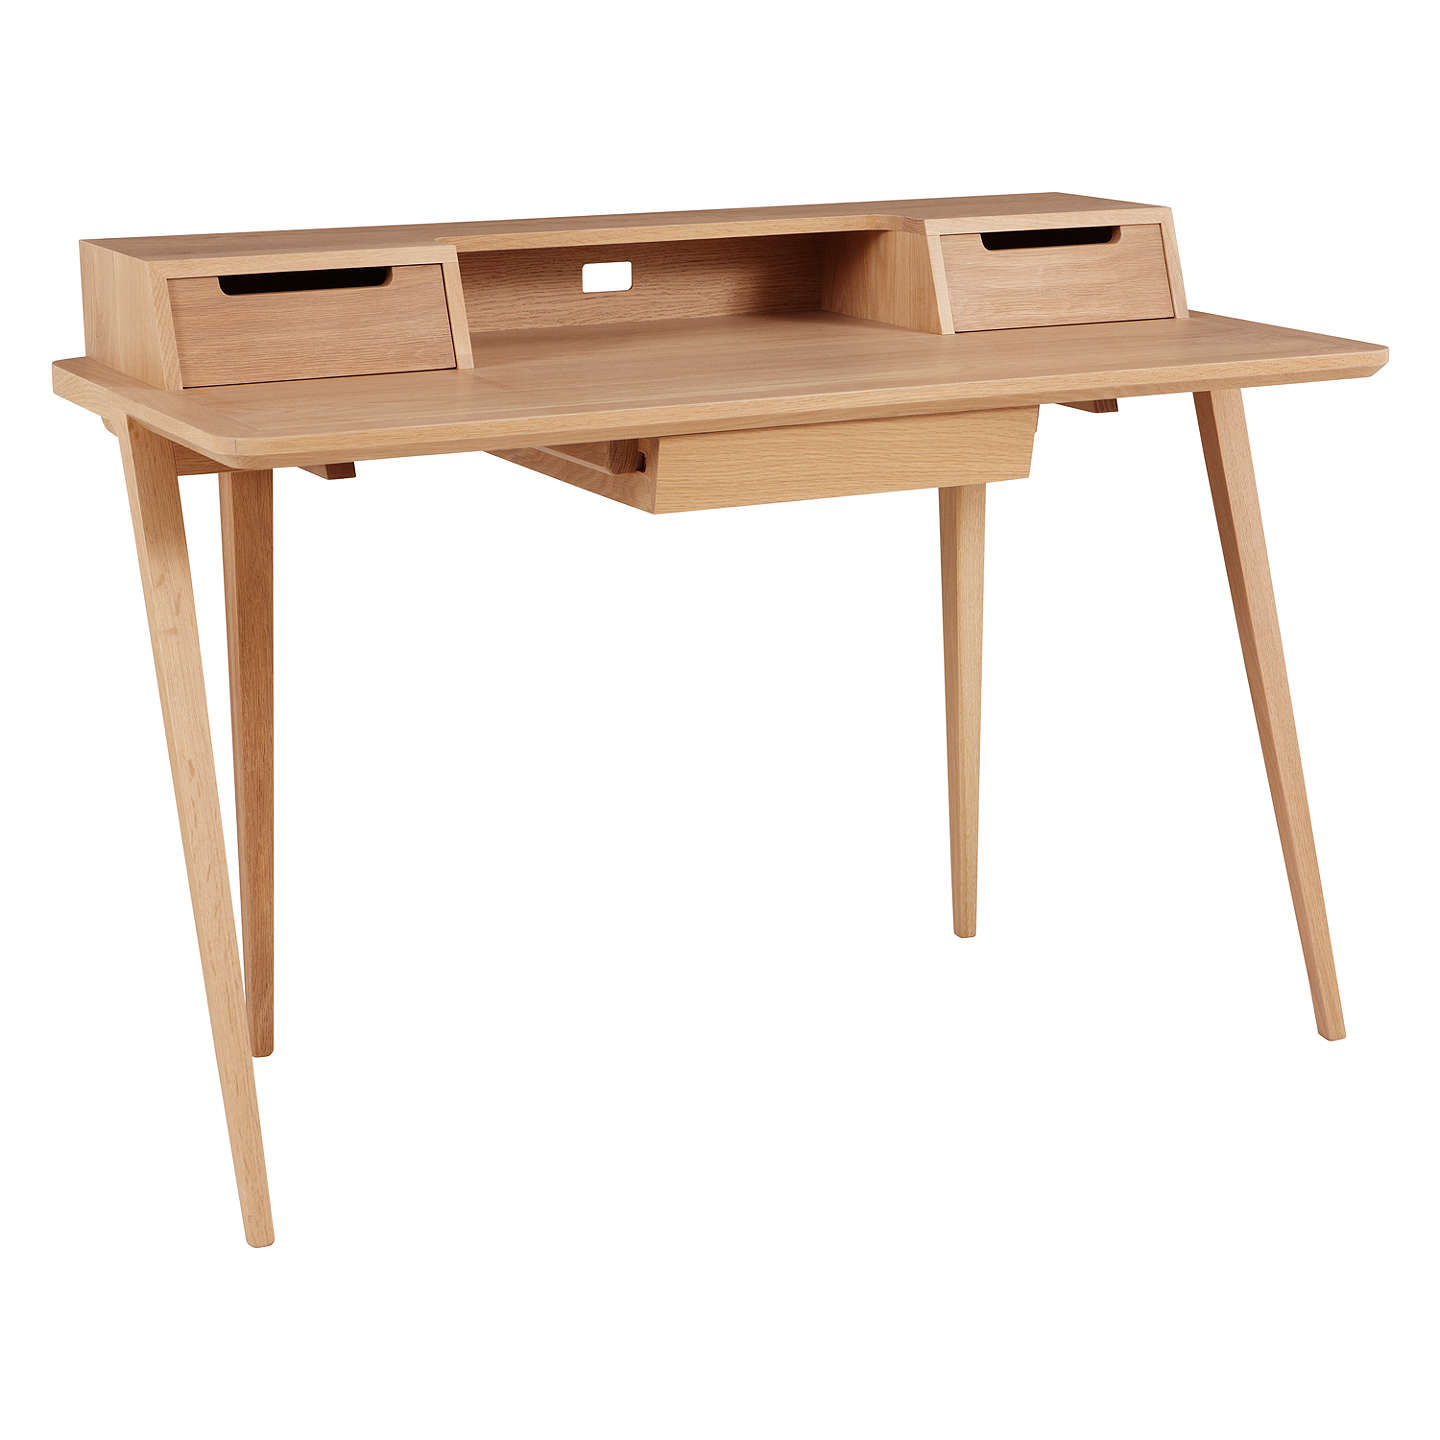 BuyMatthew Hilton for ercol Treviso Desk Online at johnlewis.com